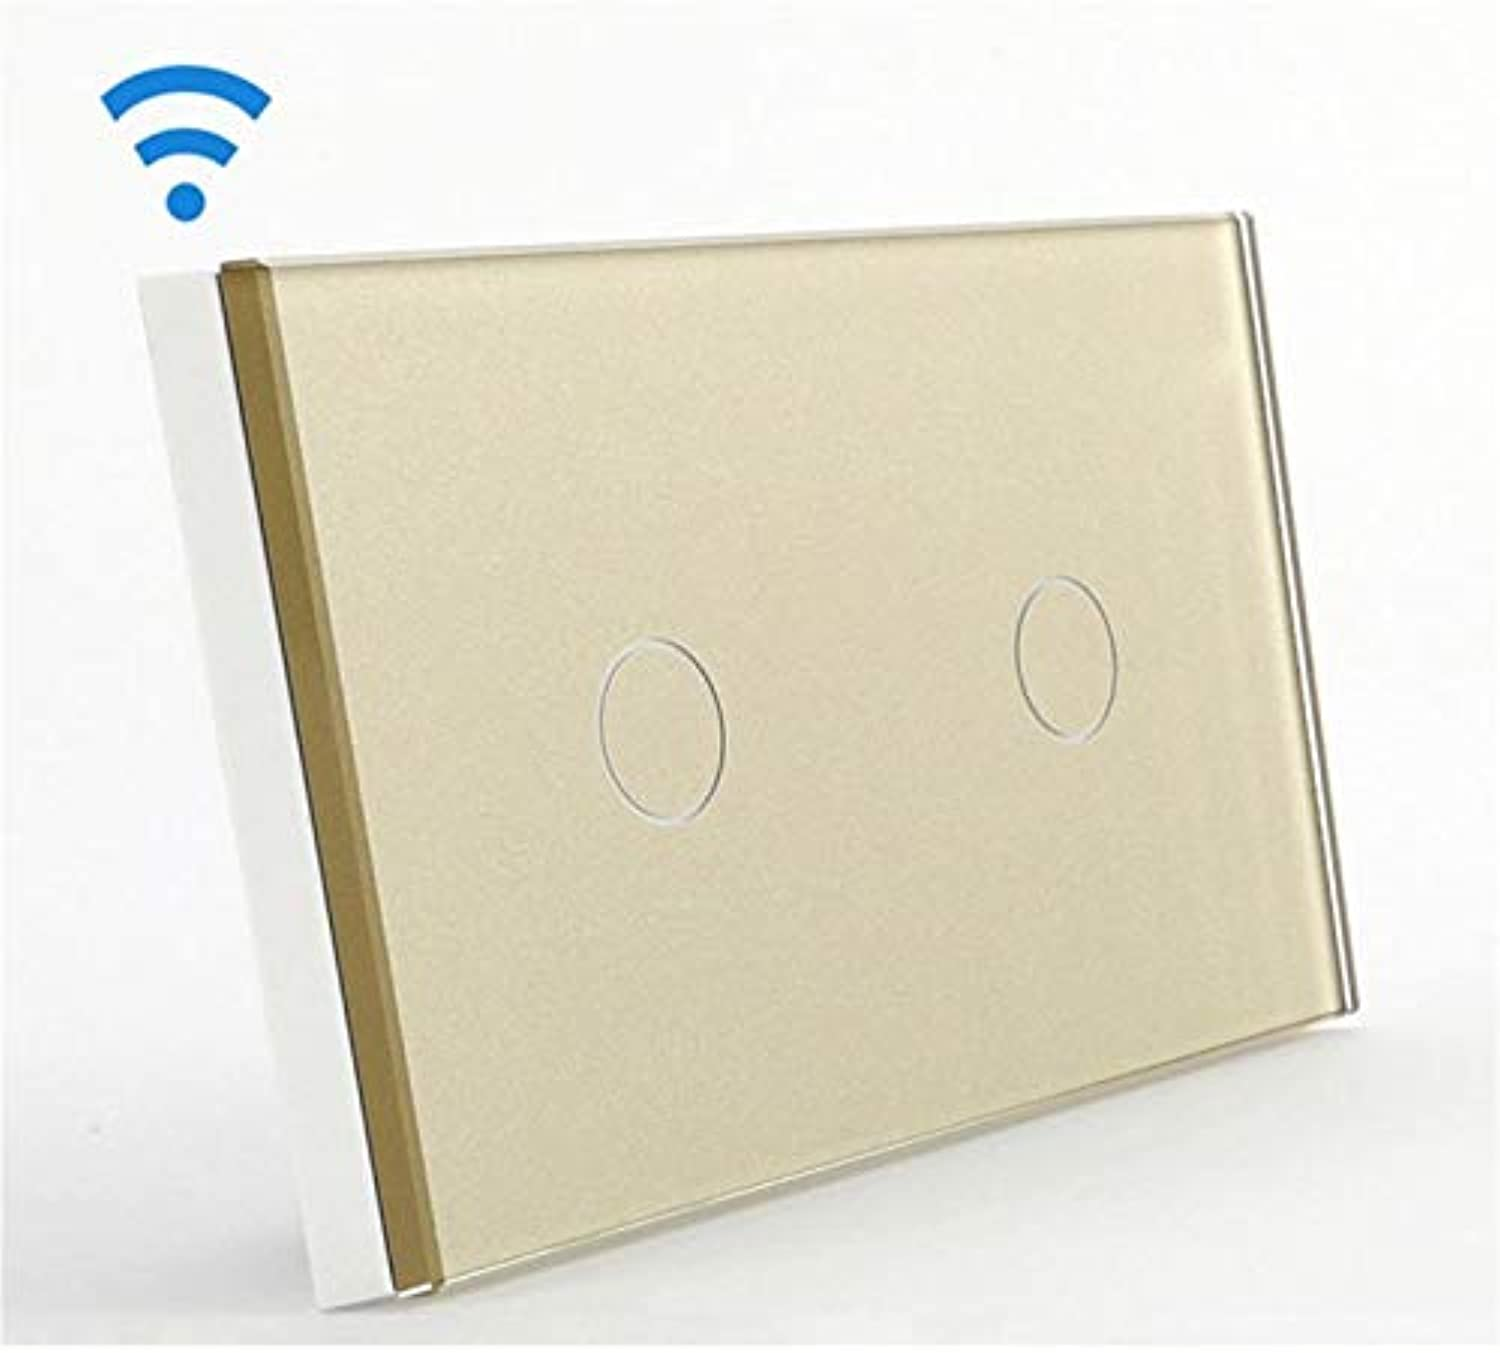 Bseed 240v Touch Light Switch 2 Gang 1 Way Remote Touch Switch with Remote Control gold Remote Switch Us Au